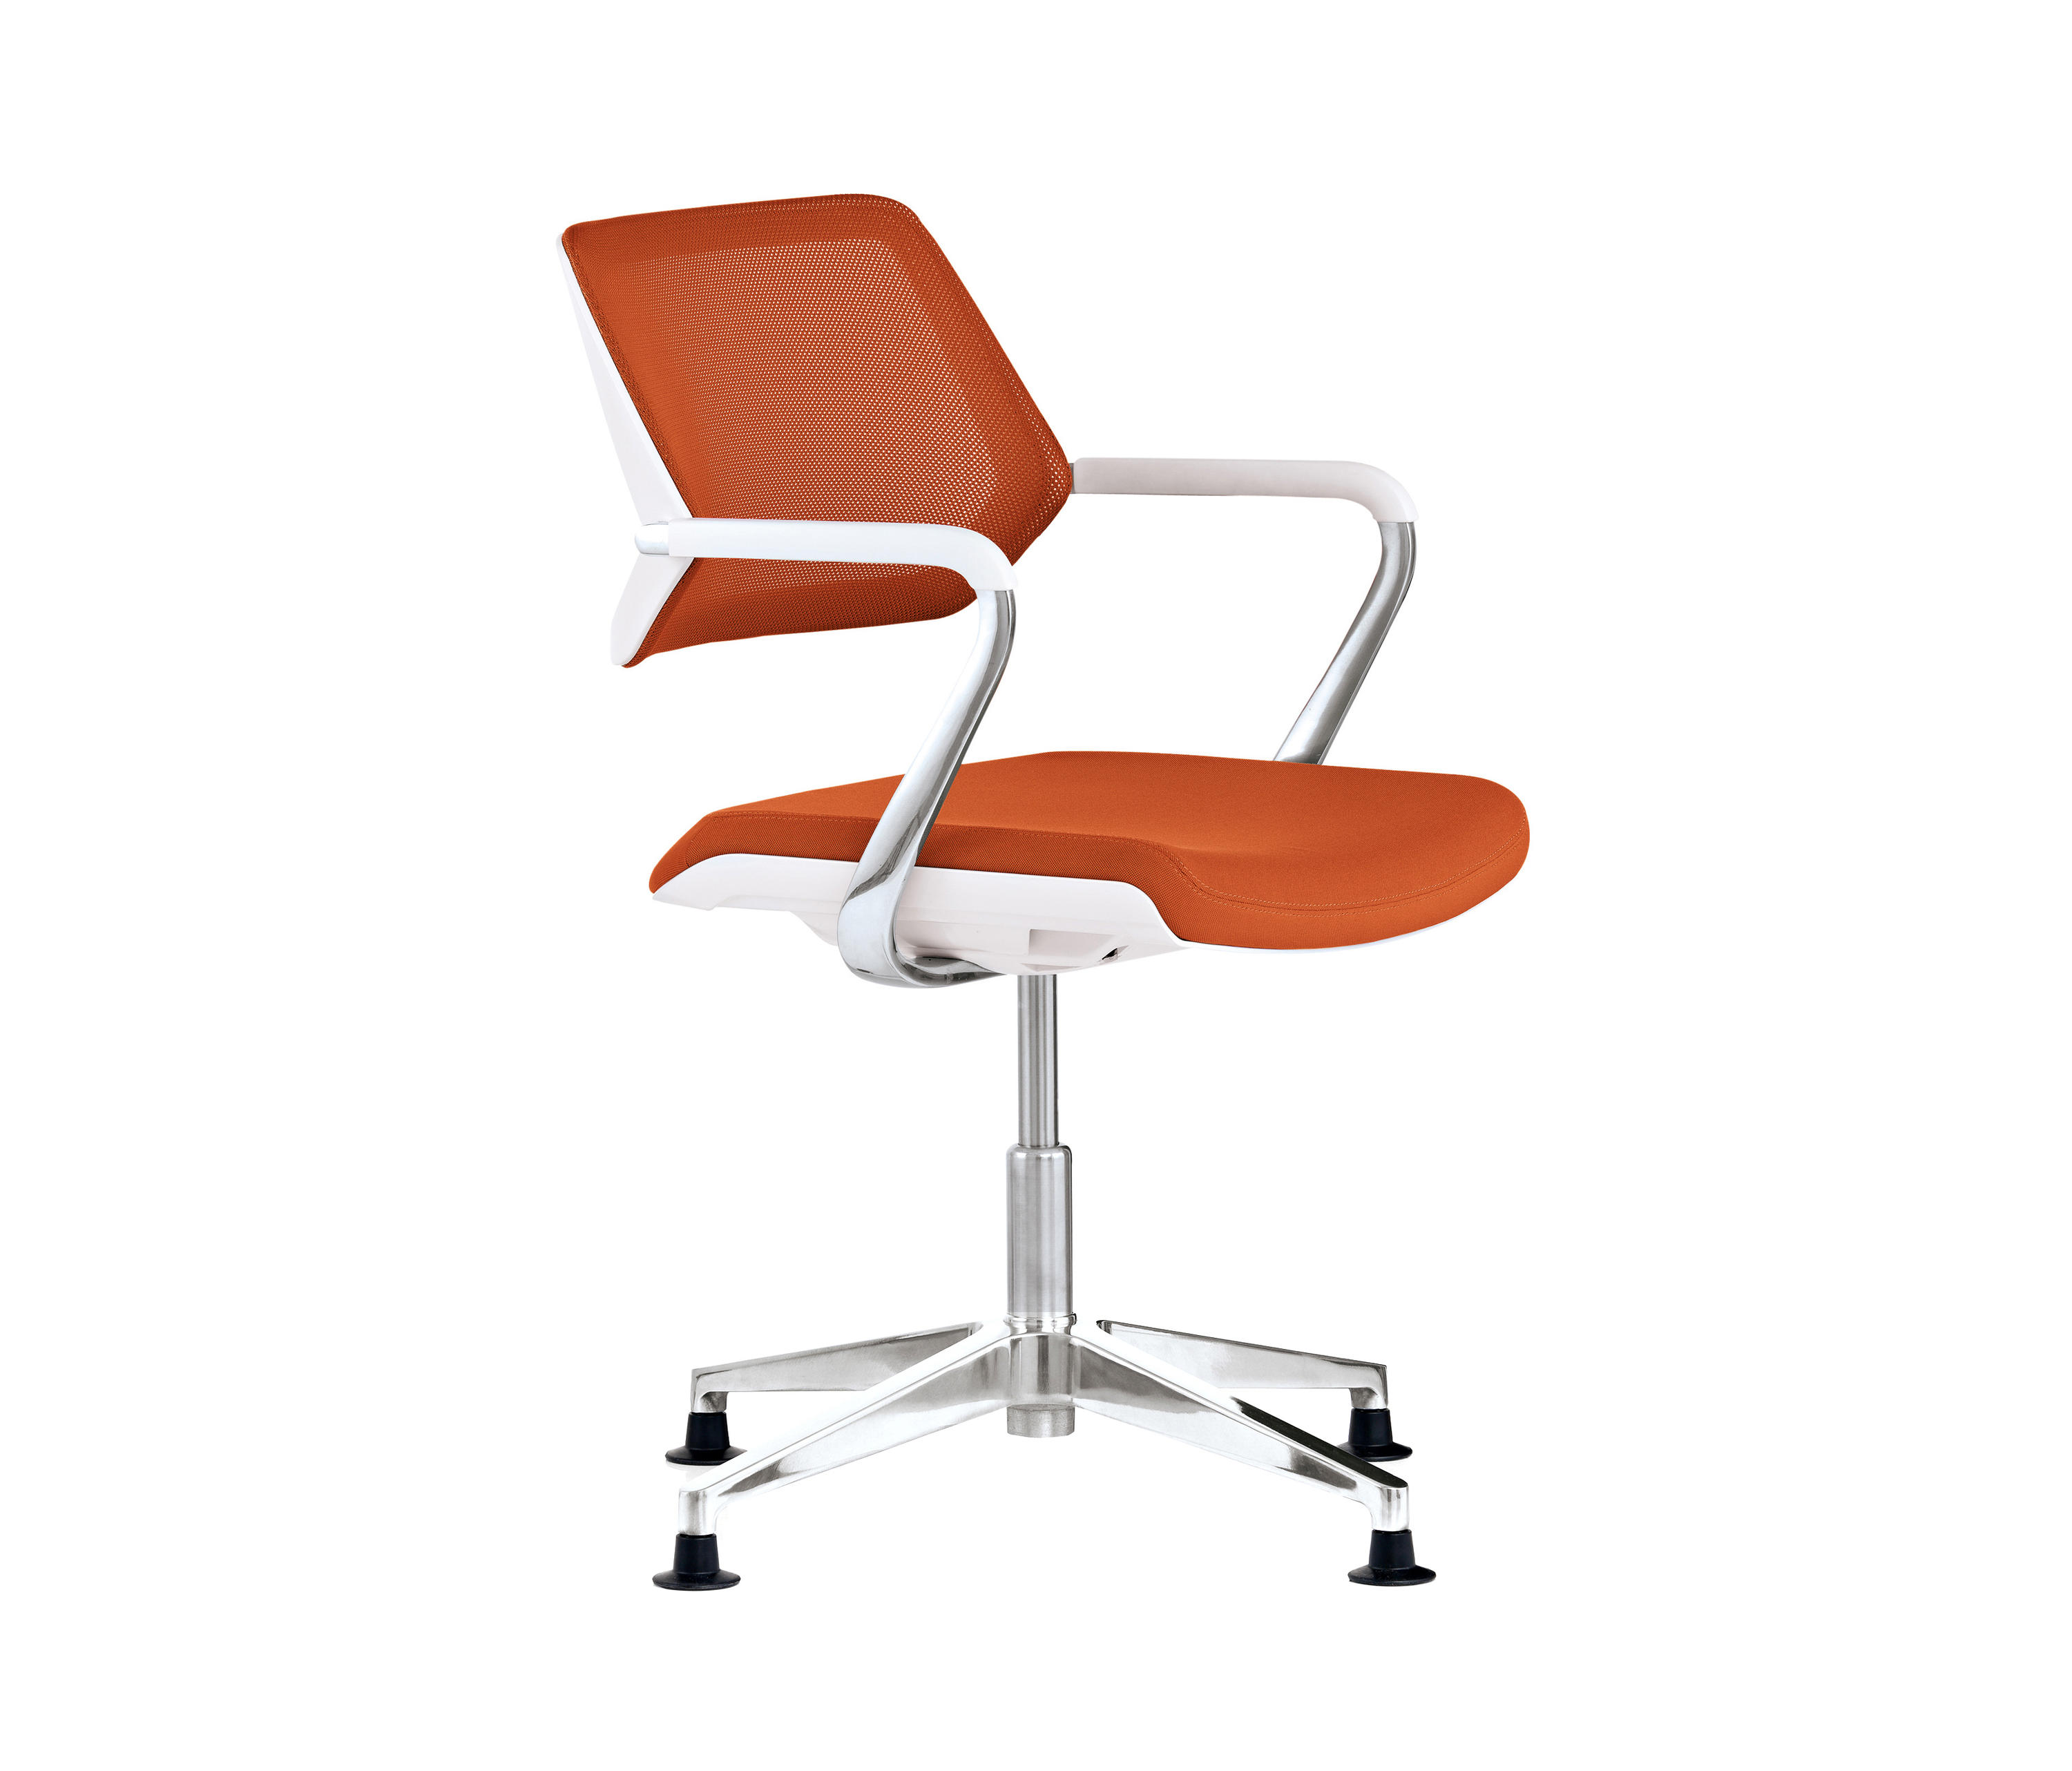 SEATING Research and select Steelcase products online